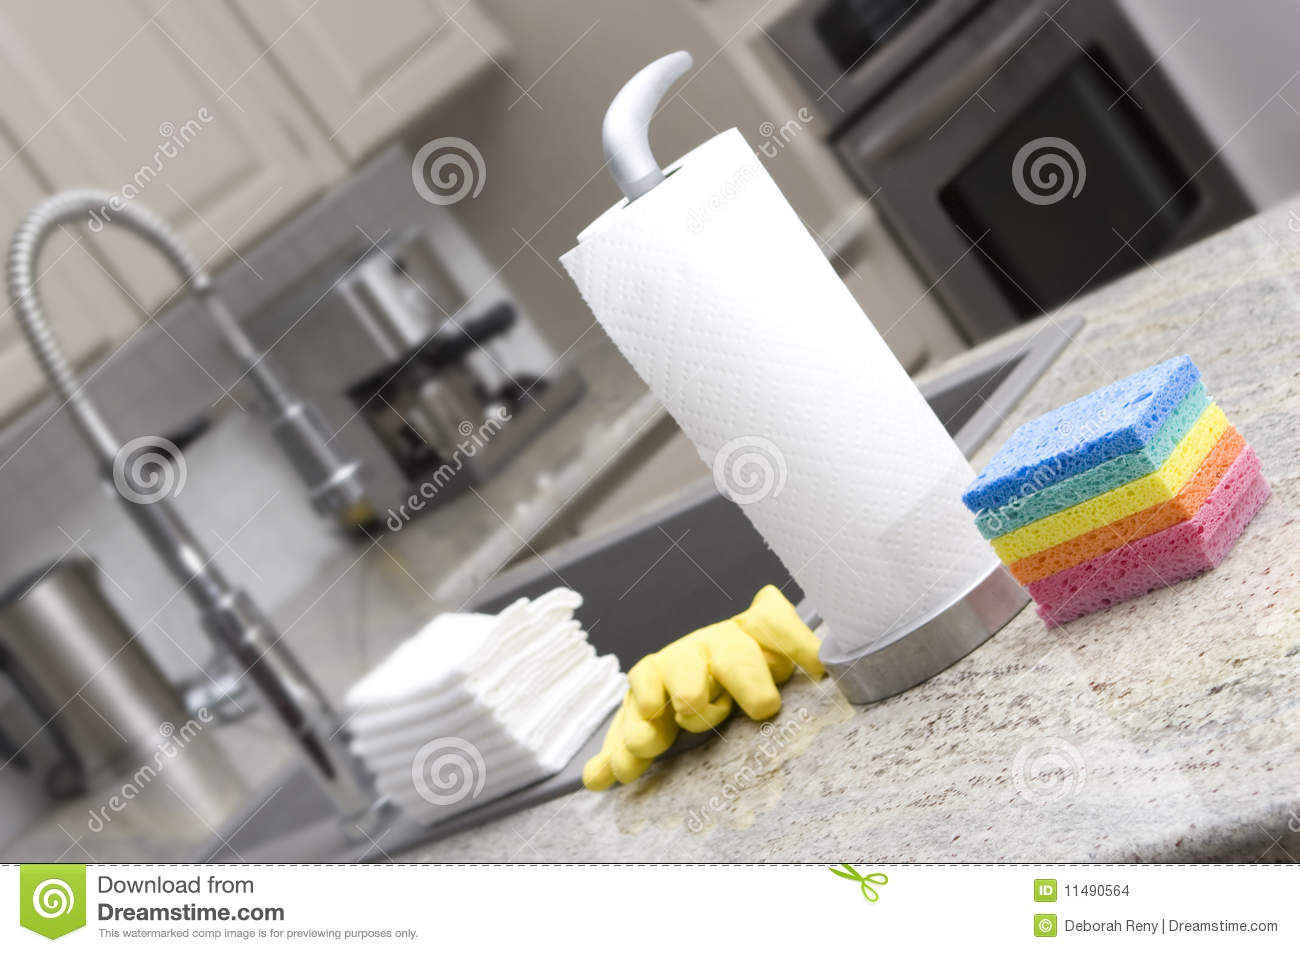 Sponges, paper towels, gloves, cloths in kitchen f